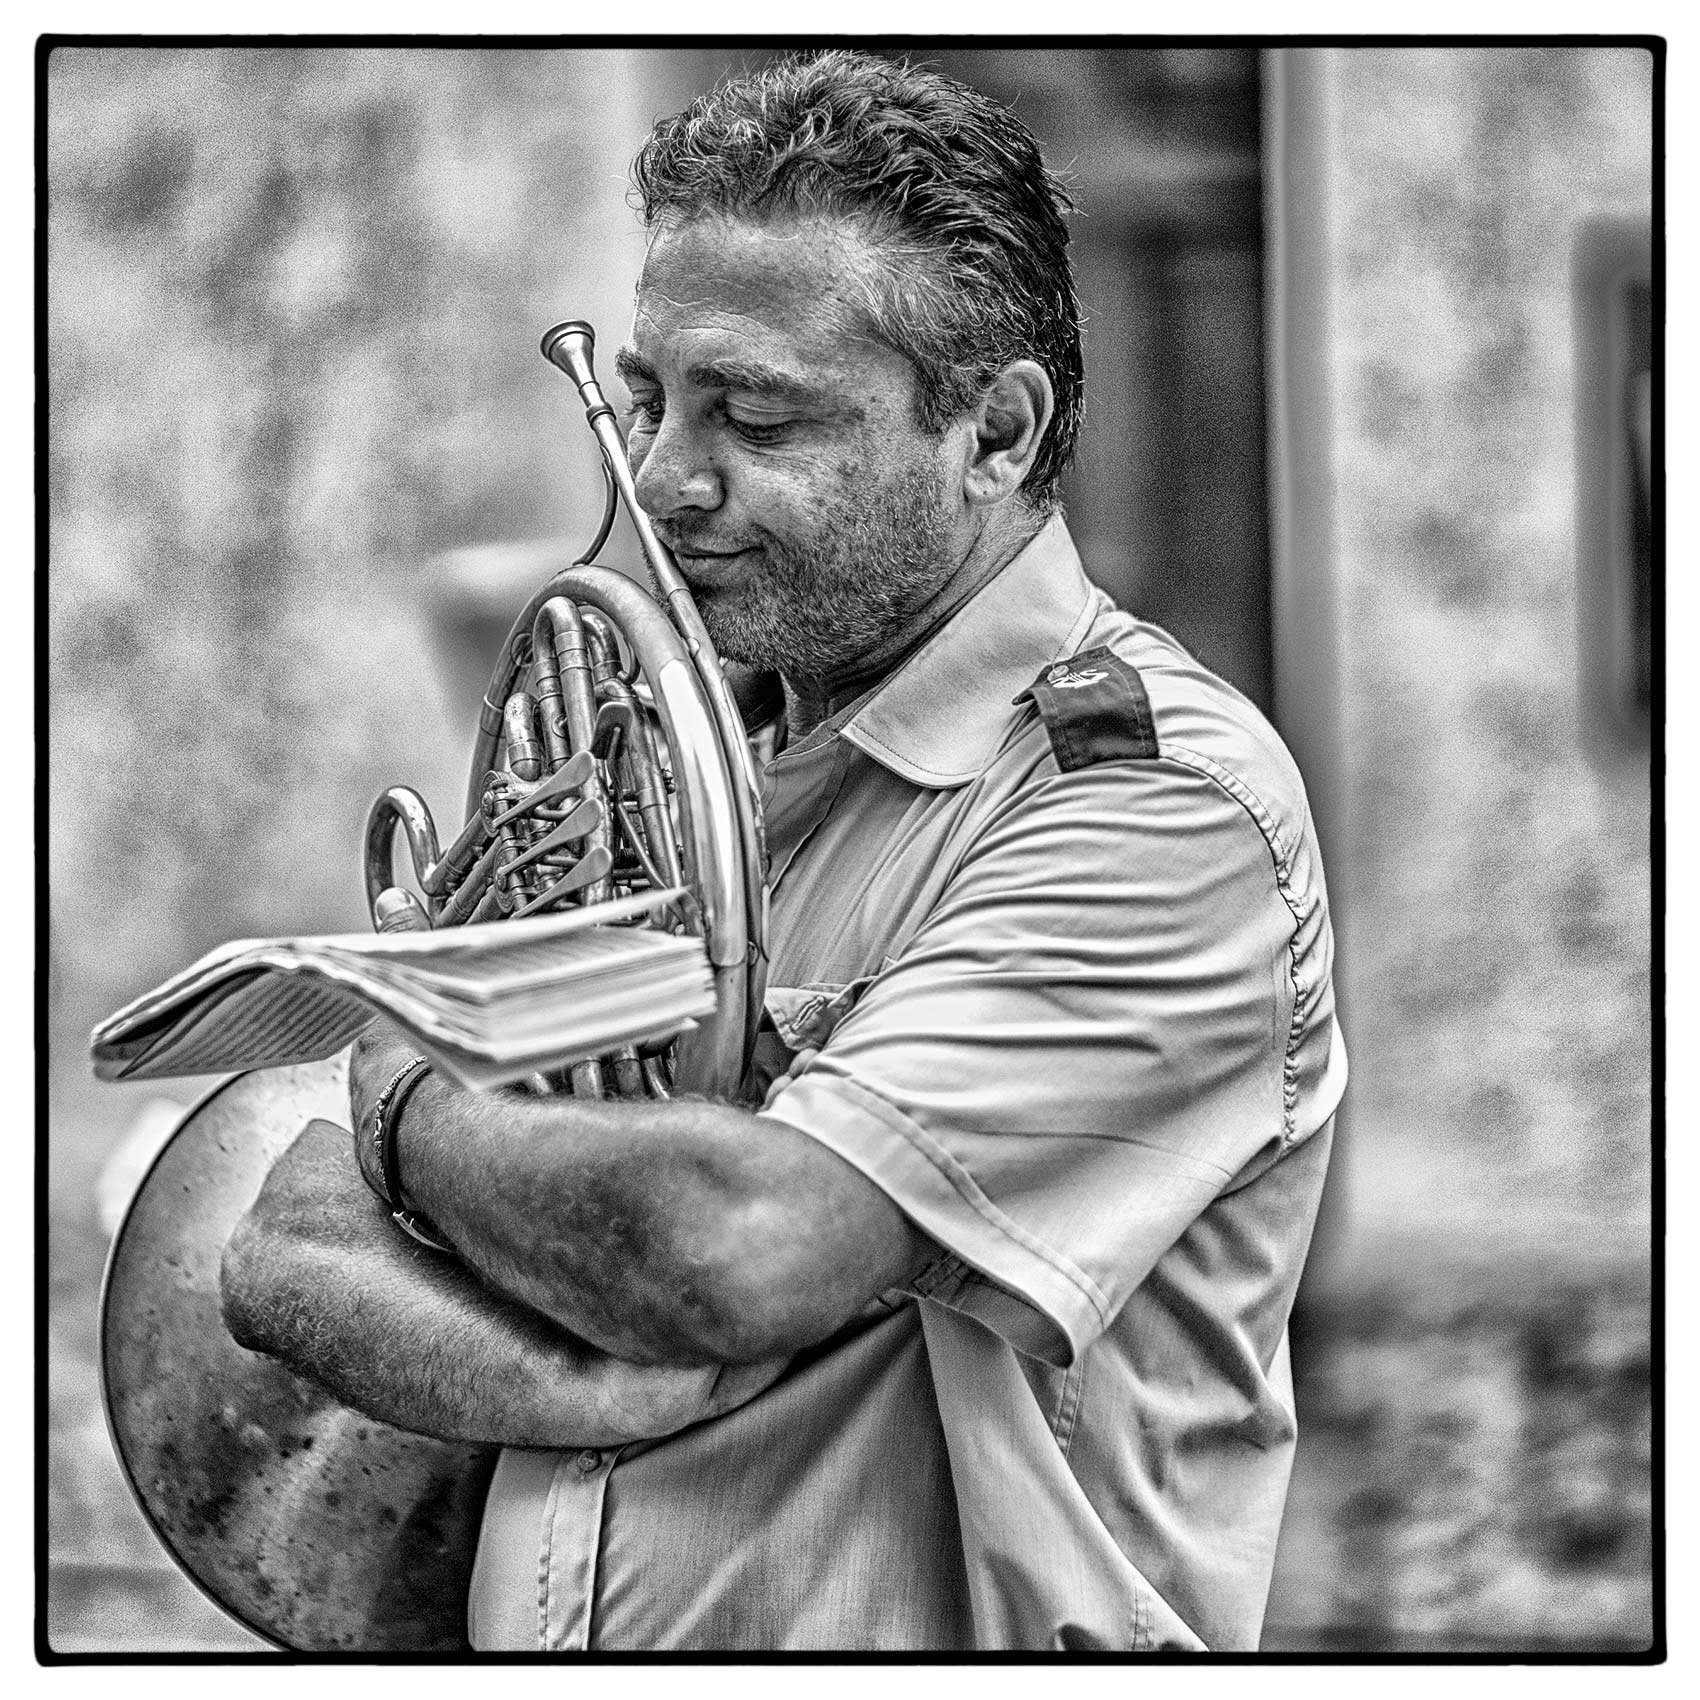 an-italian-man-holds-his-french-horn-tightly-as-he-appears-deep-in-thought-while-reading-his-music